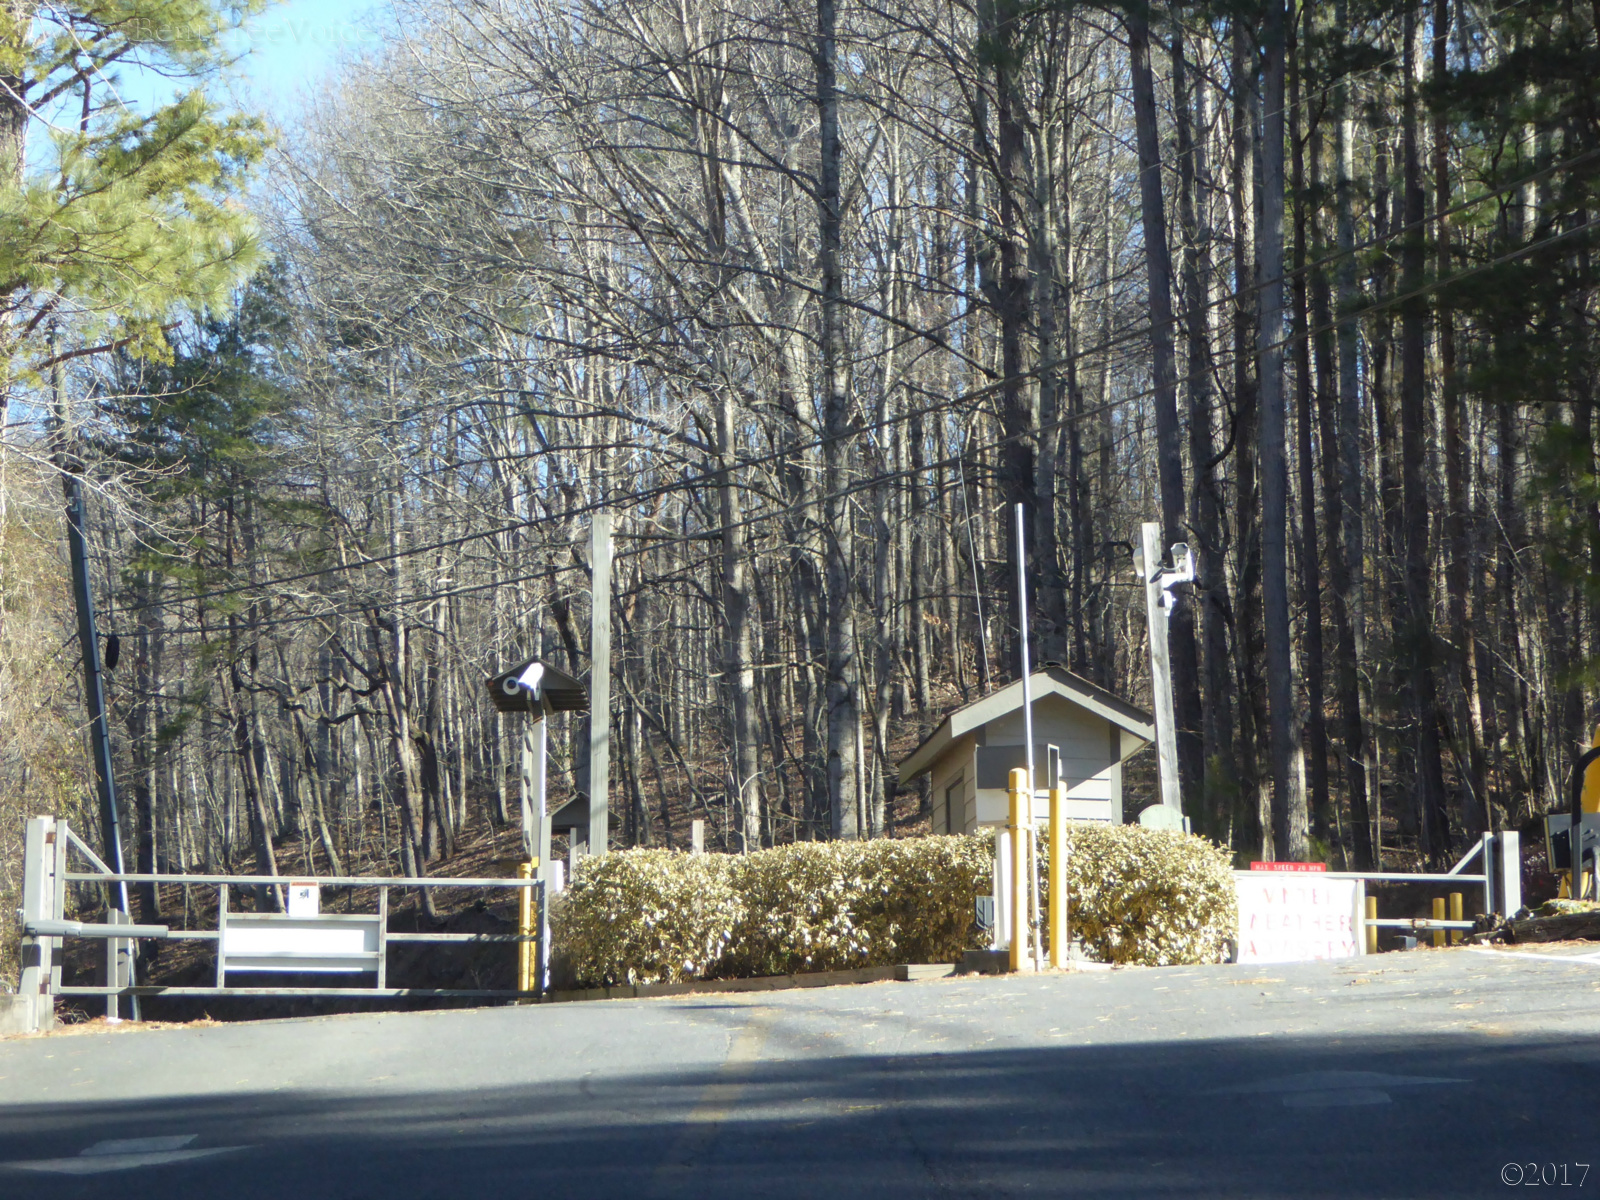 February 15, 2015 - entering through the back gate